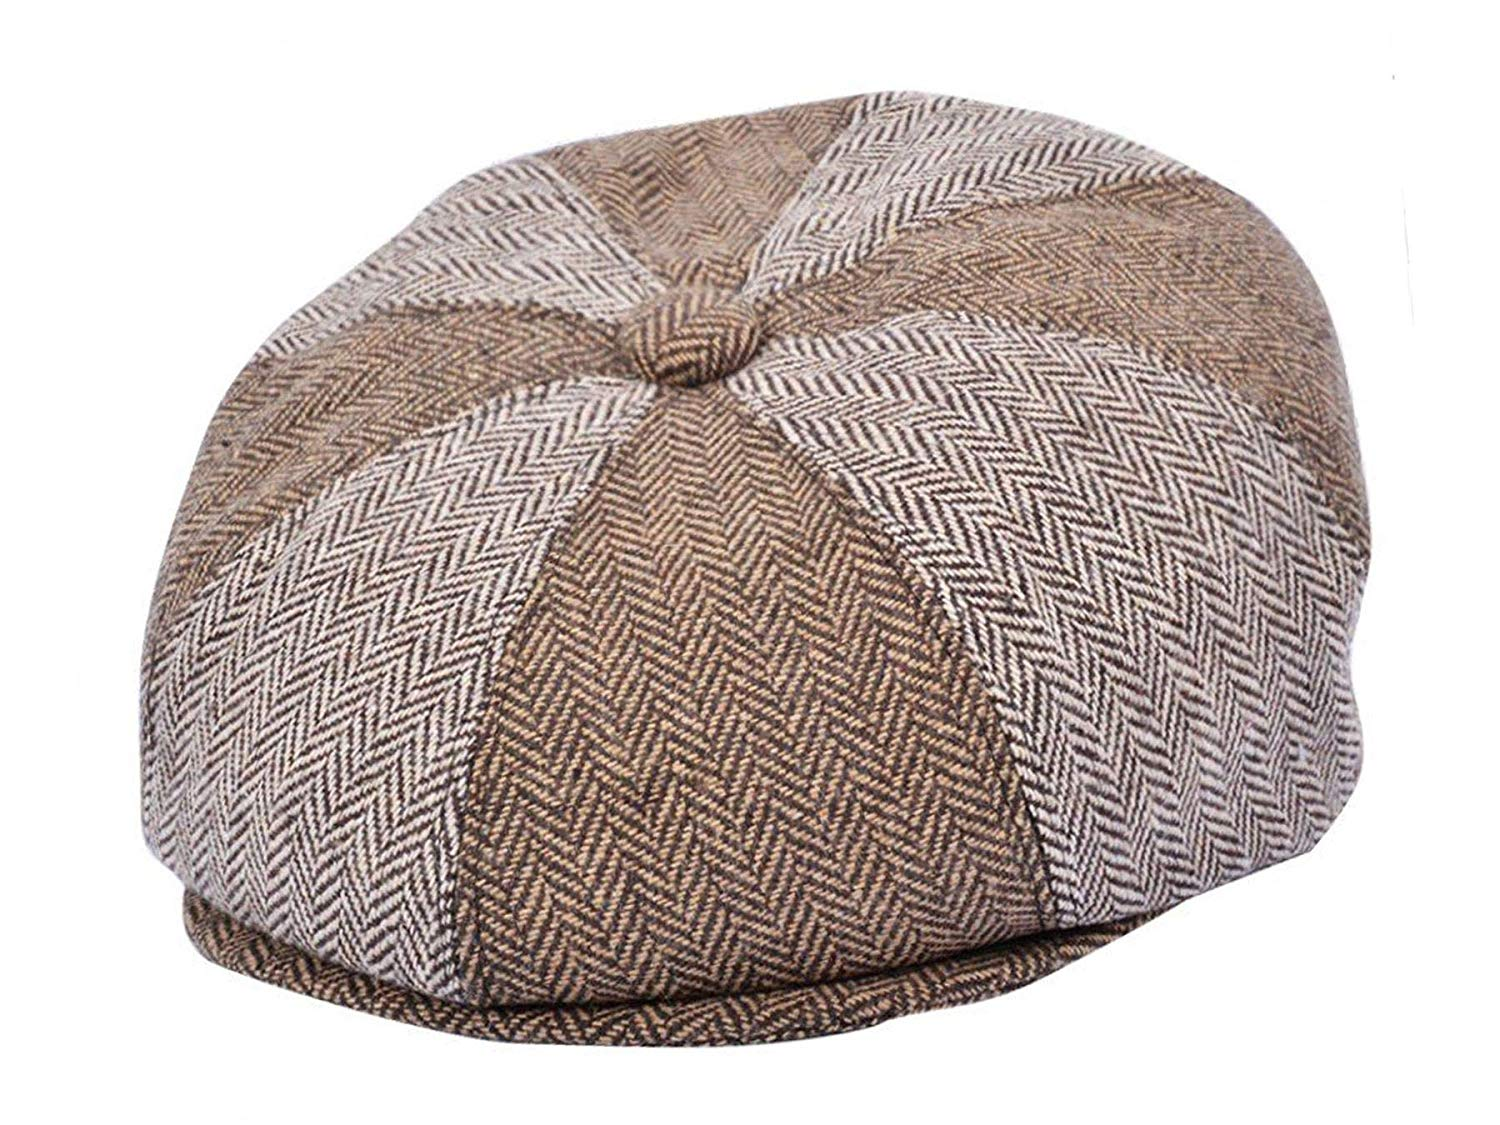 f65256ea98f The Hat Shop Wool Herringbone Multi Patchwork Newsboy Cap